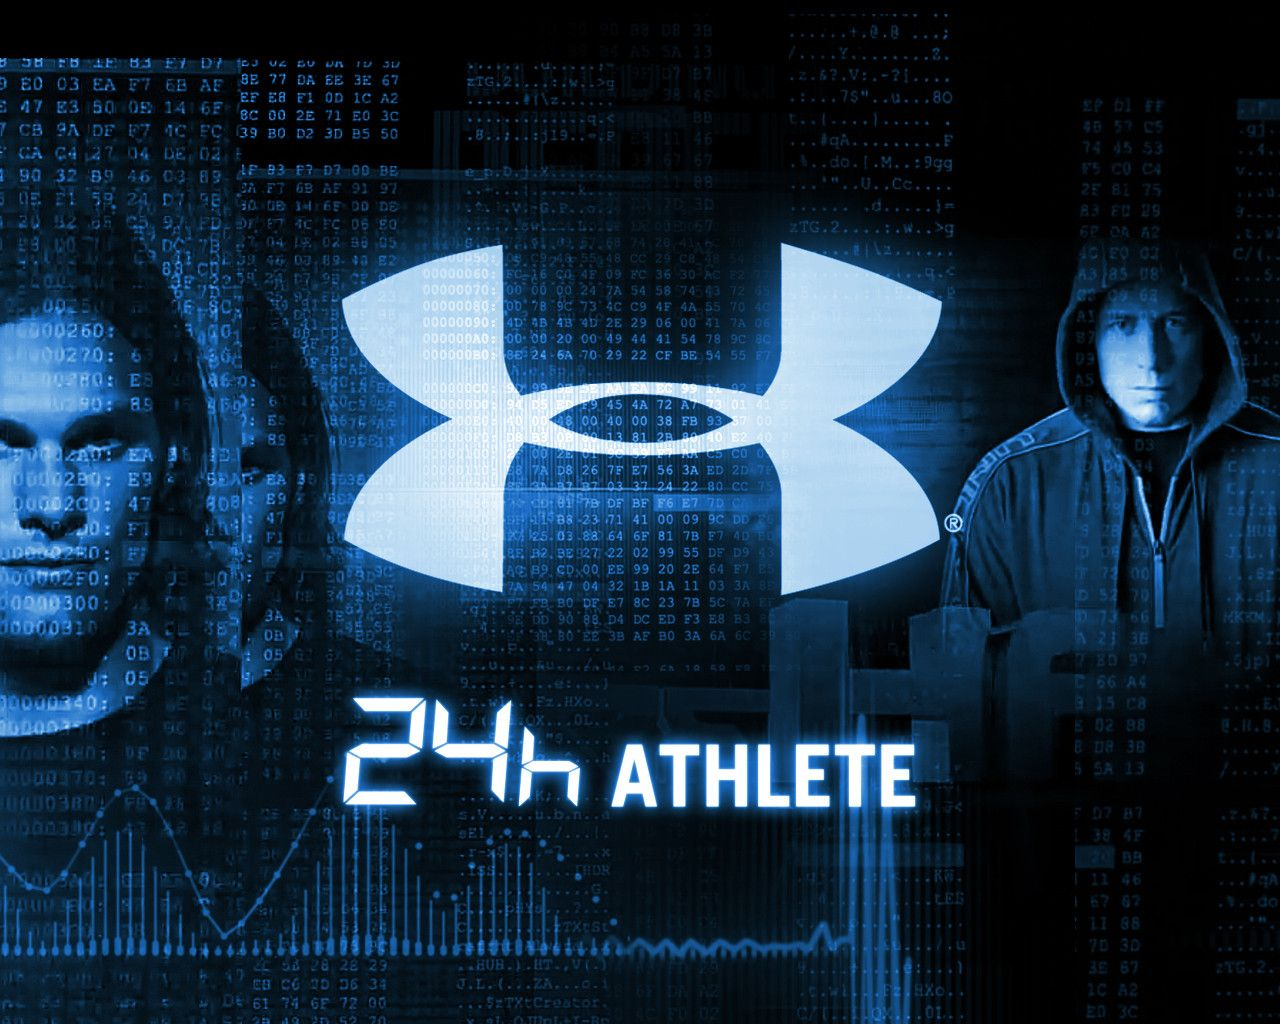 Under Armour Wallpaper HD Collections - wallpaper21 com